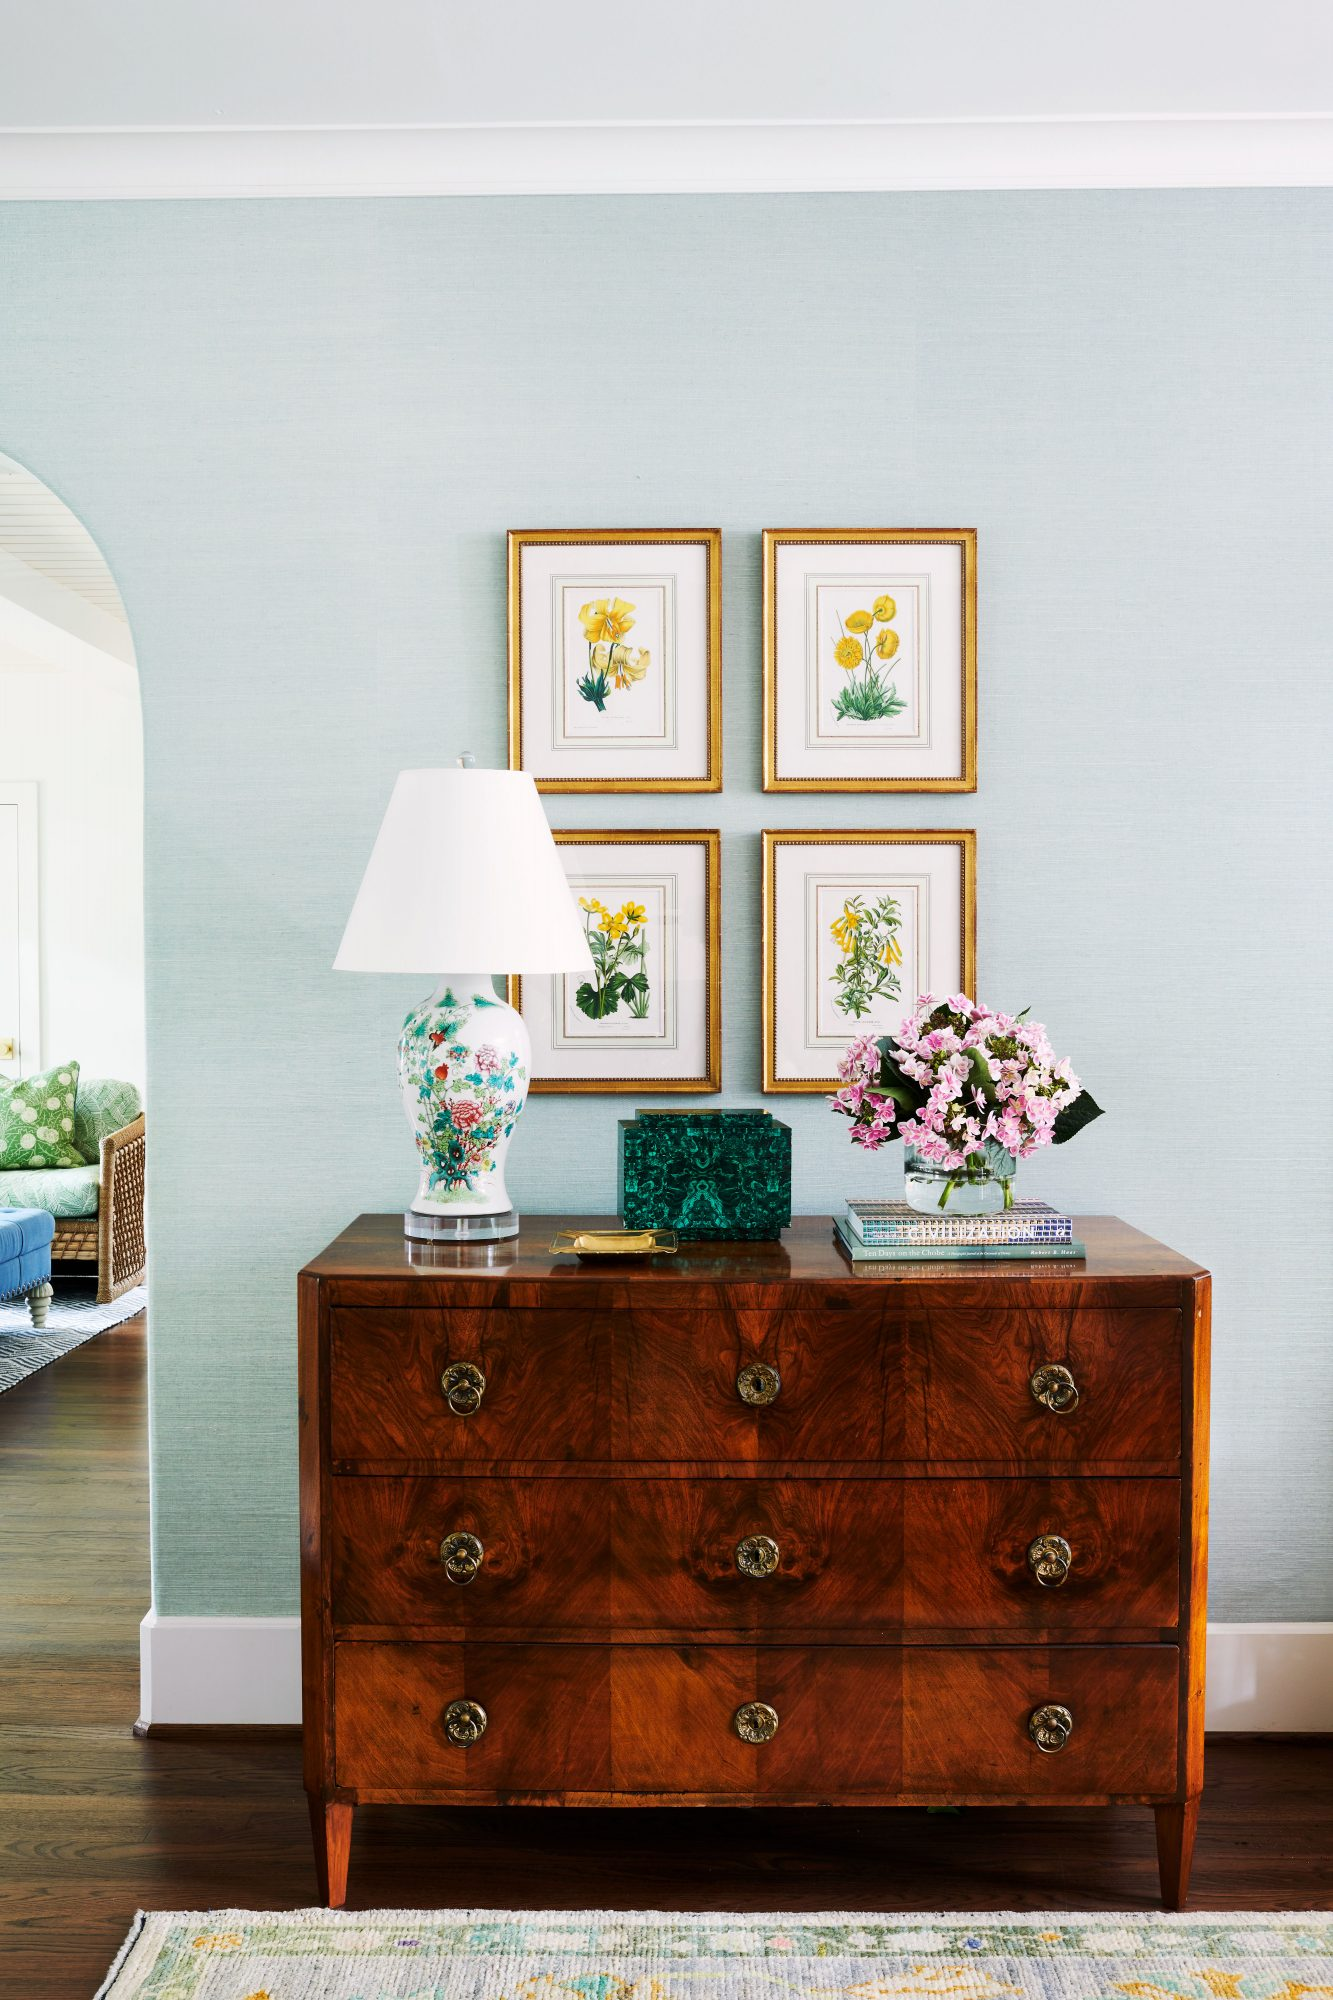 Light blue wall room with antique dresser and botanical prints hung above